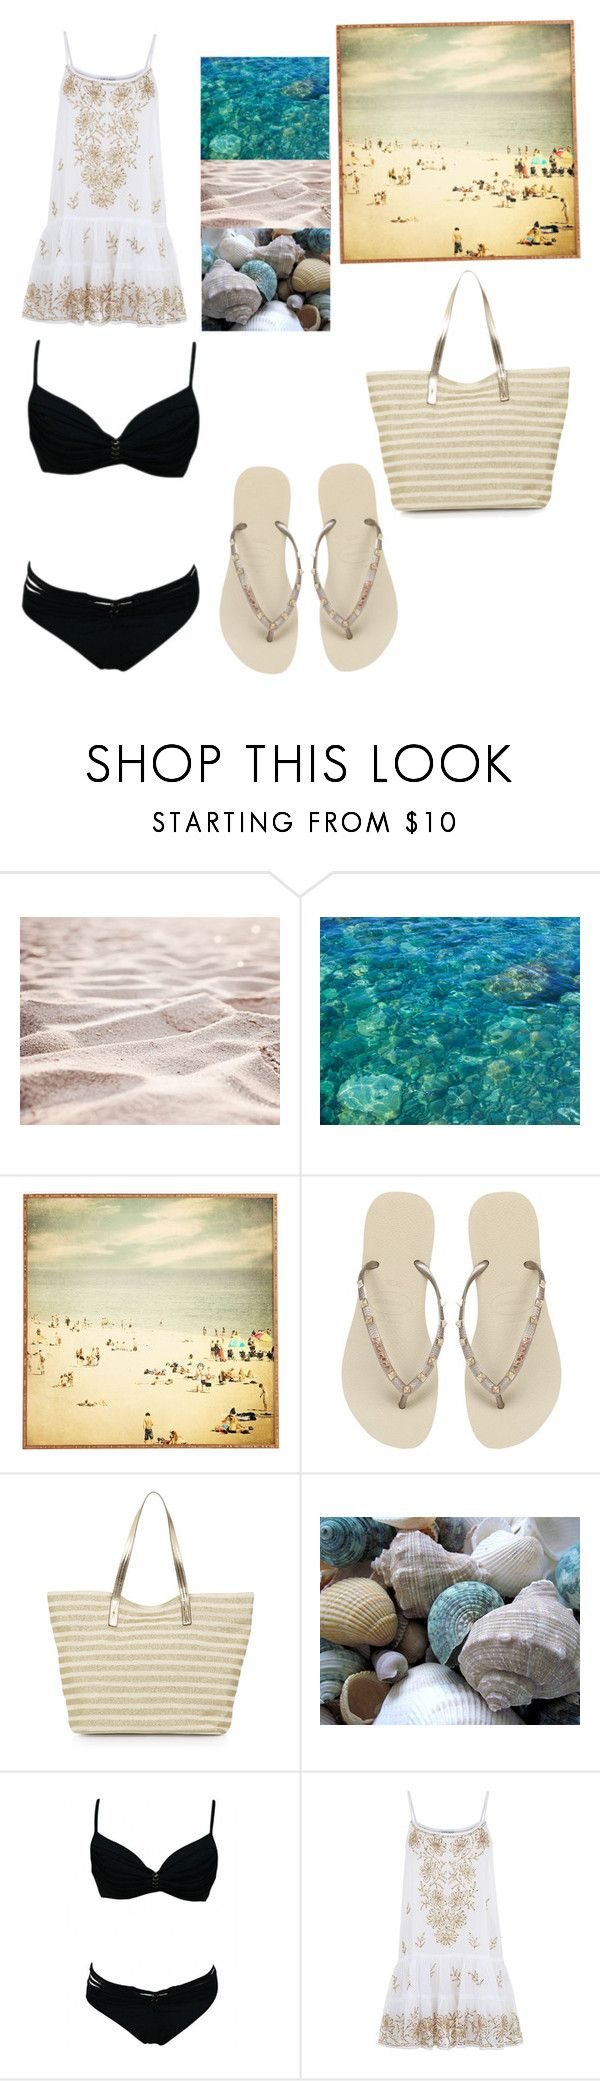 """""""Beach"""" by karabookiss ❤ liked on Polyvore featuring WALL, Universal Lighting and Decor, Havaianas, Monsoon and Juliet Dunn"""